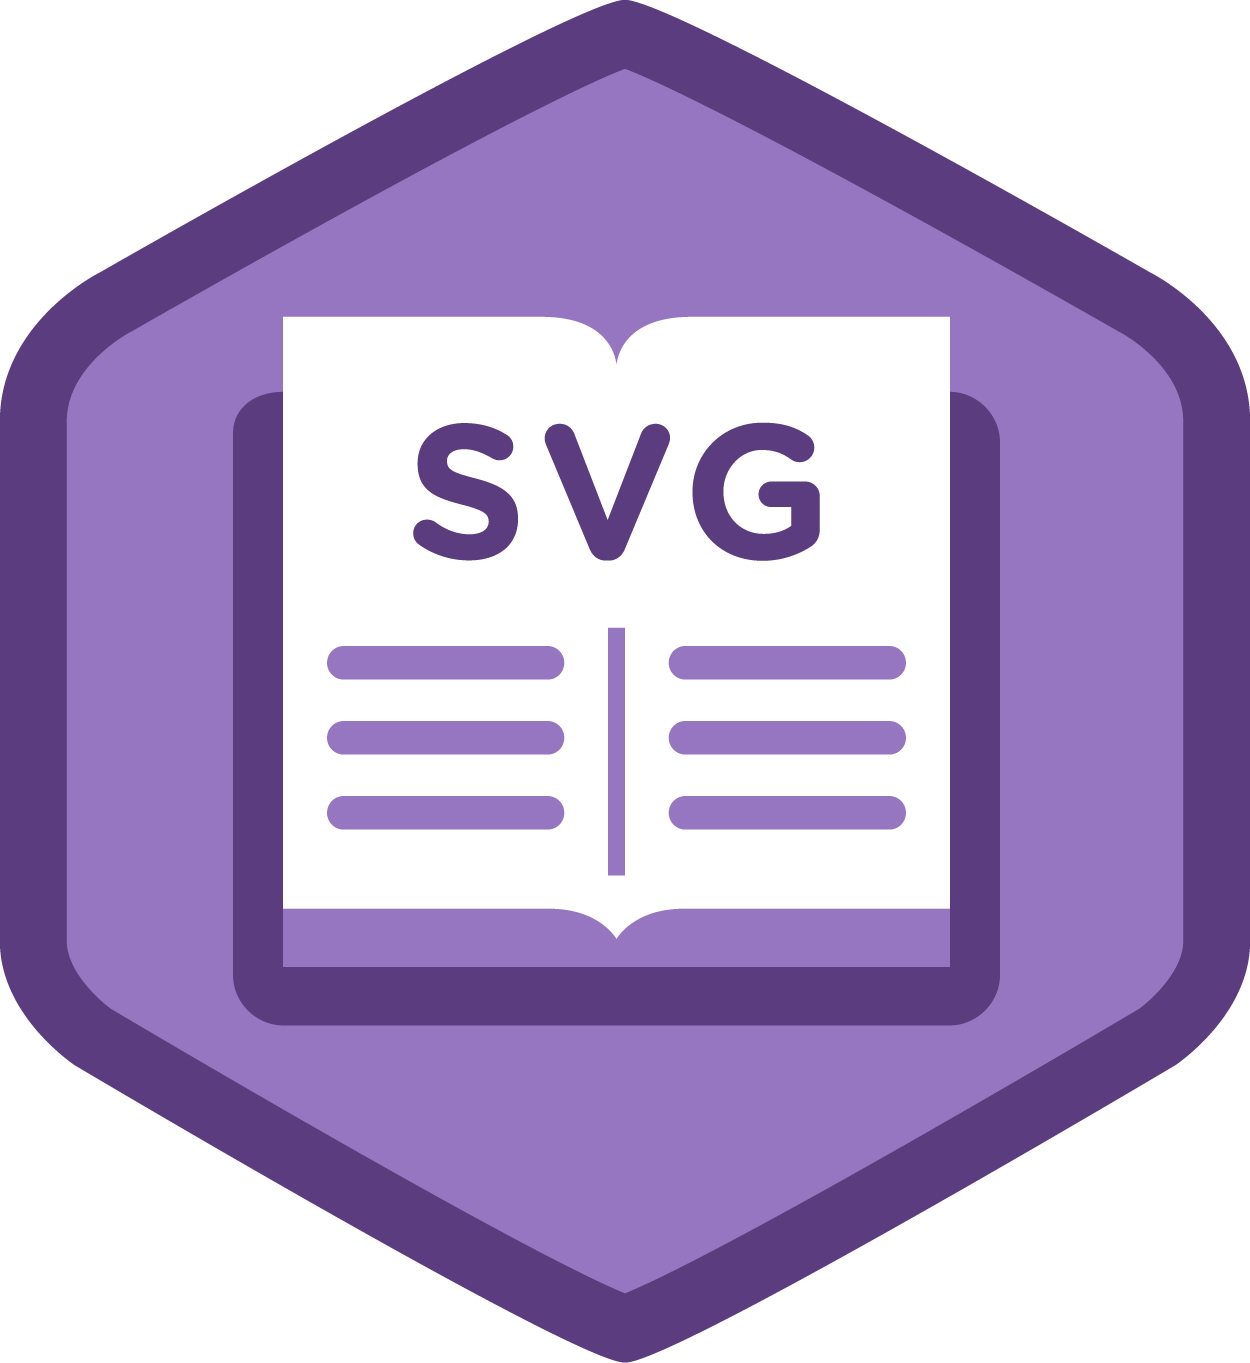 Scalable Vector Graphics (SVG) is an XML markup language for creating two-dimensional images using vectors. This is different from traditional raster-based image formats that use pixels, like JPEG and PNG. When used on web pages, SVG images provide an infinite level of detail, so they look sharp regardless of screen size or pixel density. In this course, we'll look at situations where SVGs are better than PNG and JPEG files, as well as when an SVG might not be the best choice. Finally…